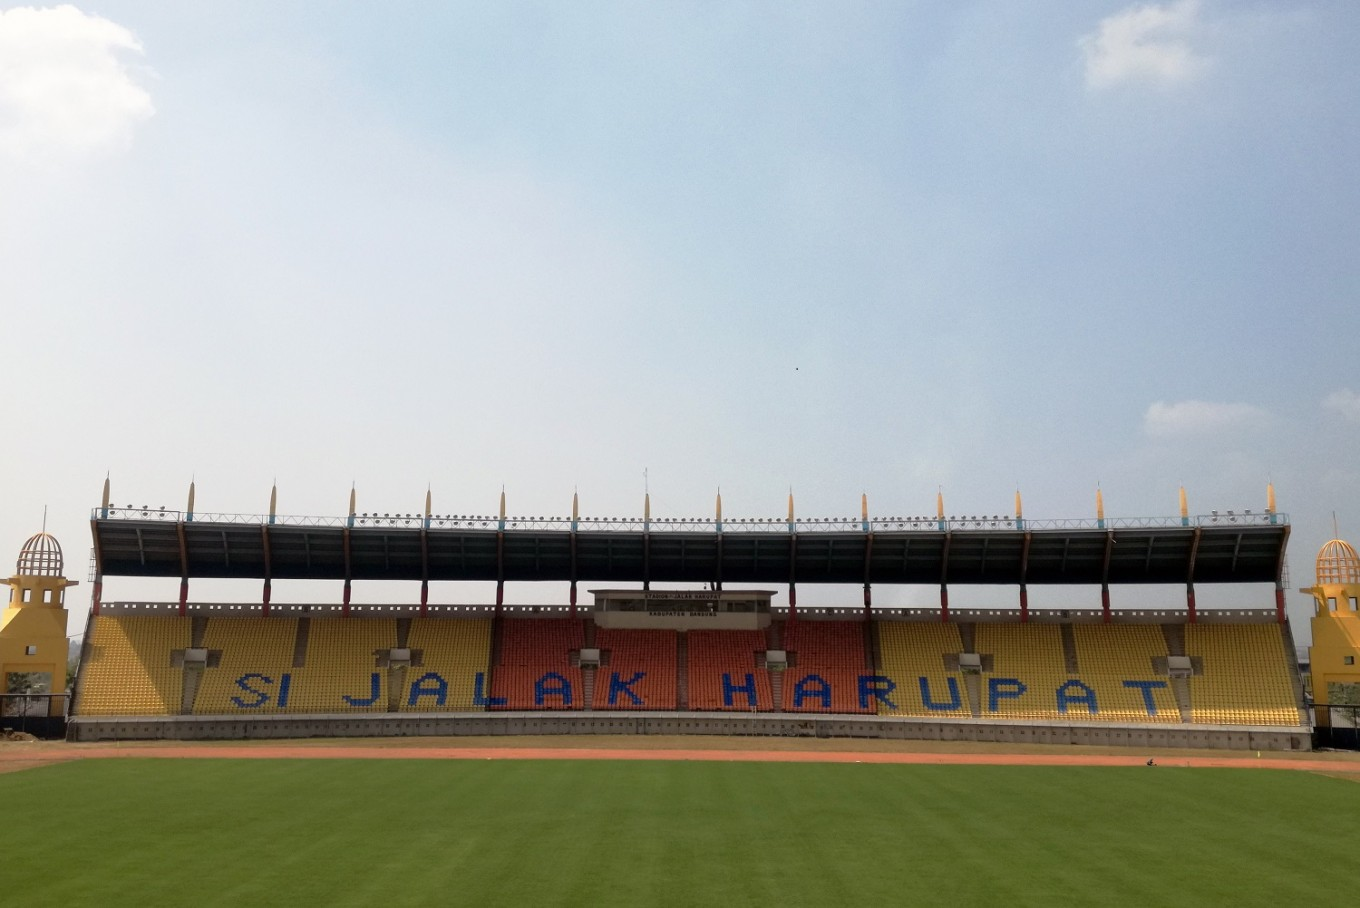 Si Jalak Harupat Stadium in Bandung, West Java, is among the venues for men's soccer at the 2018 Asian Games.